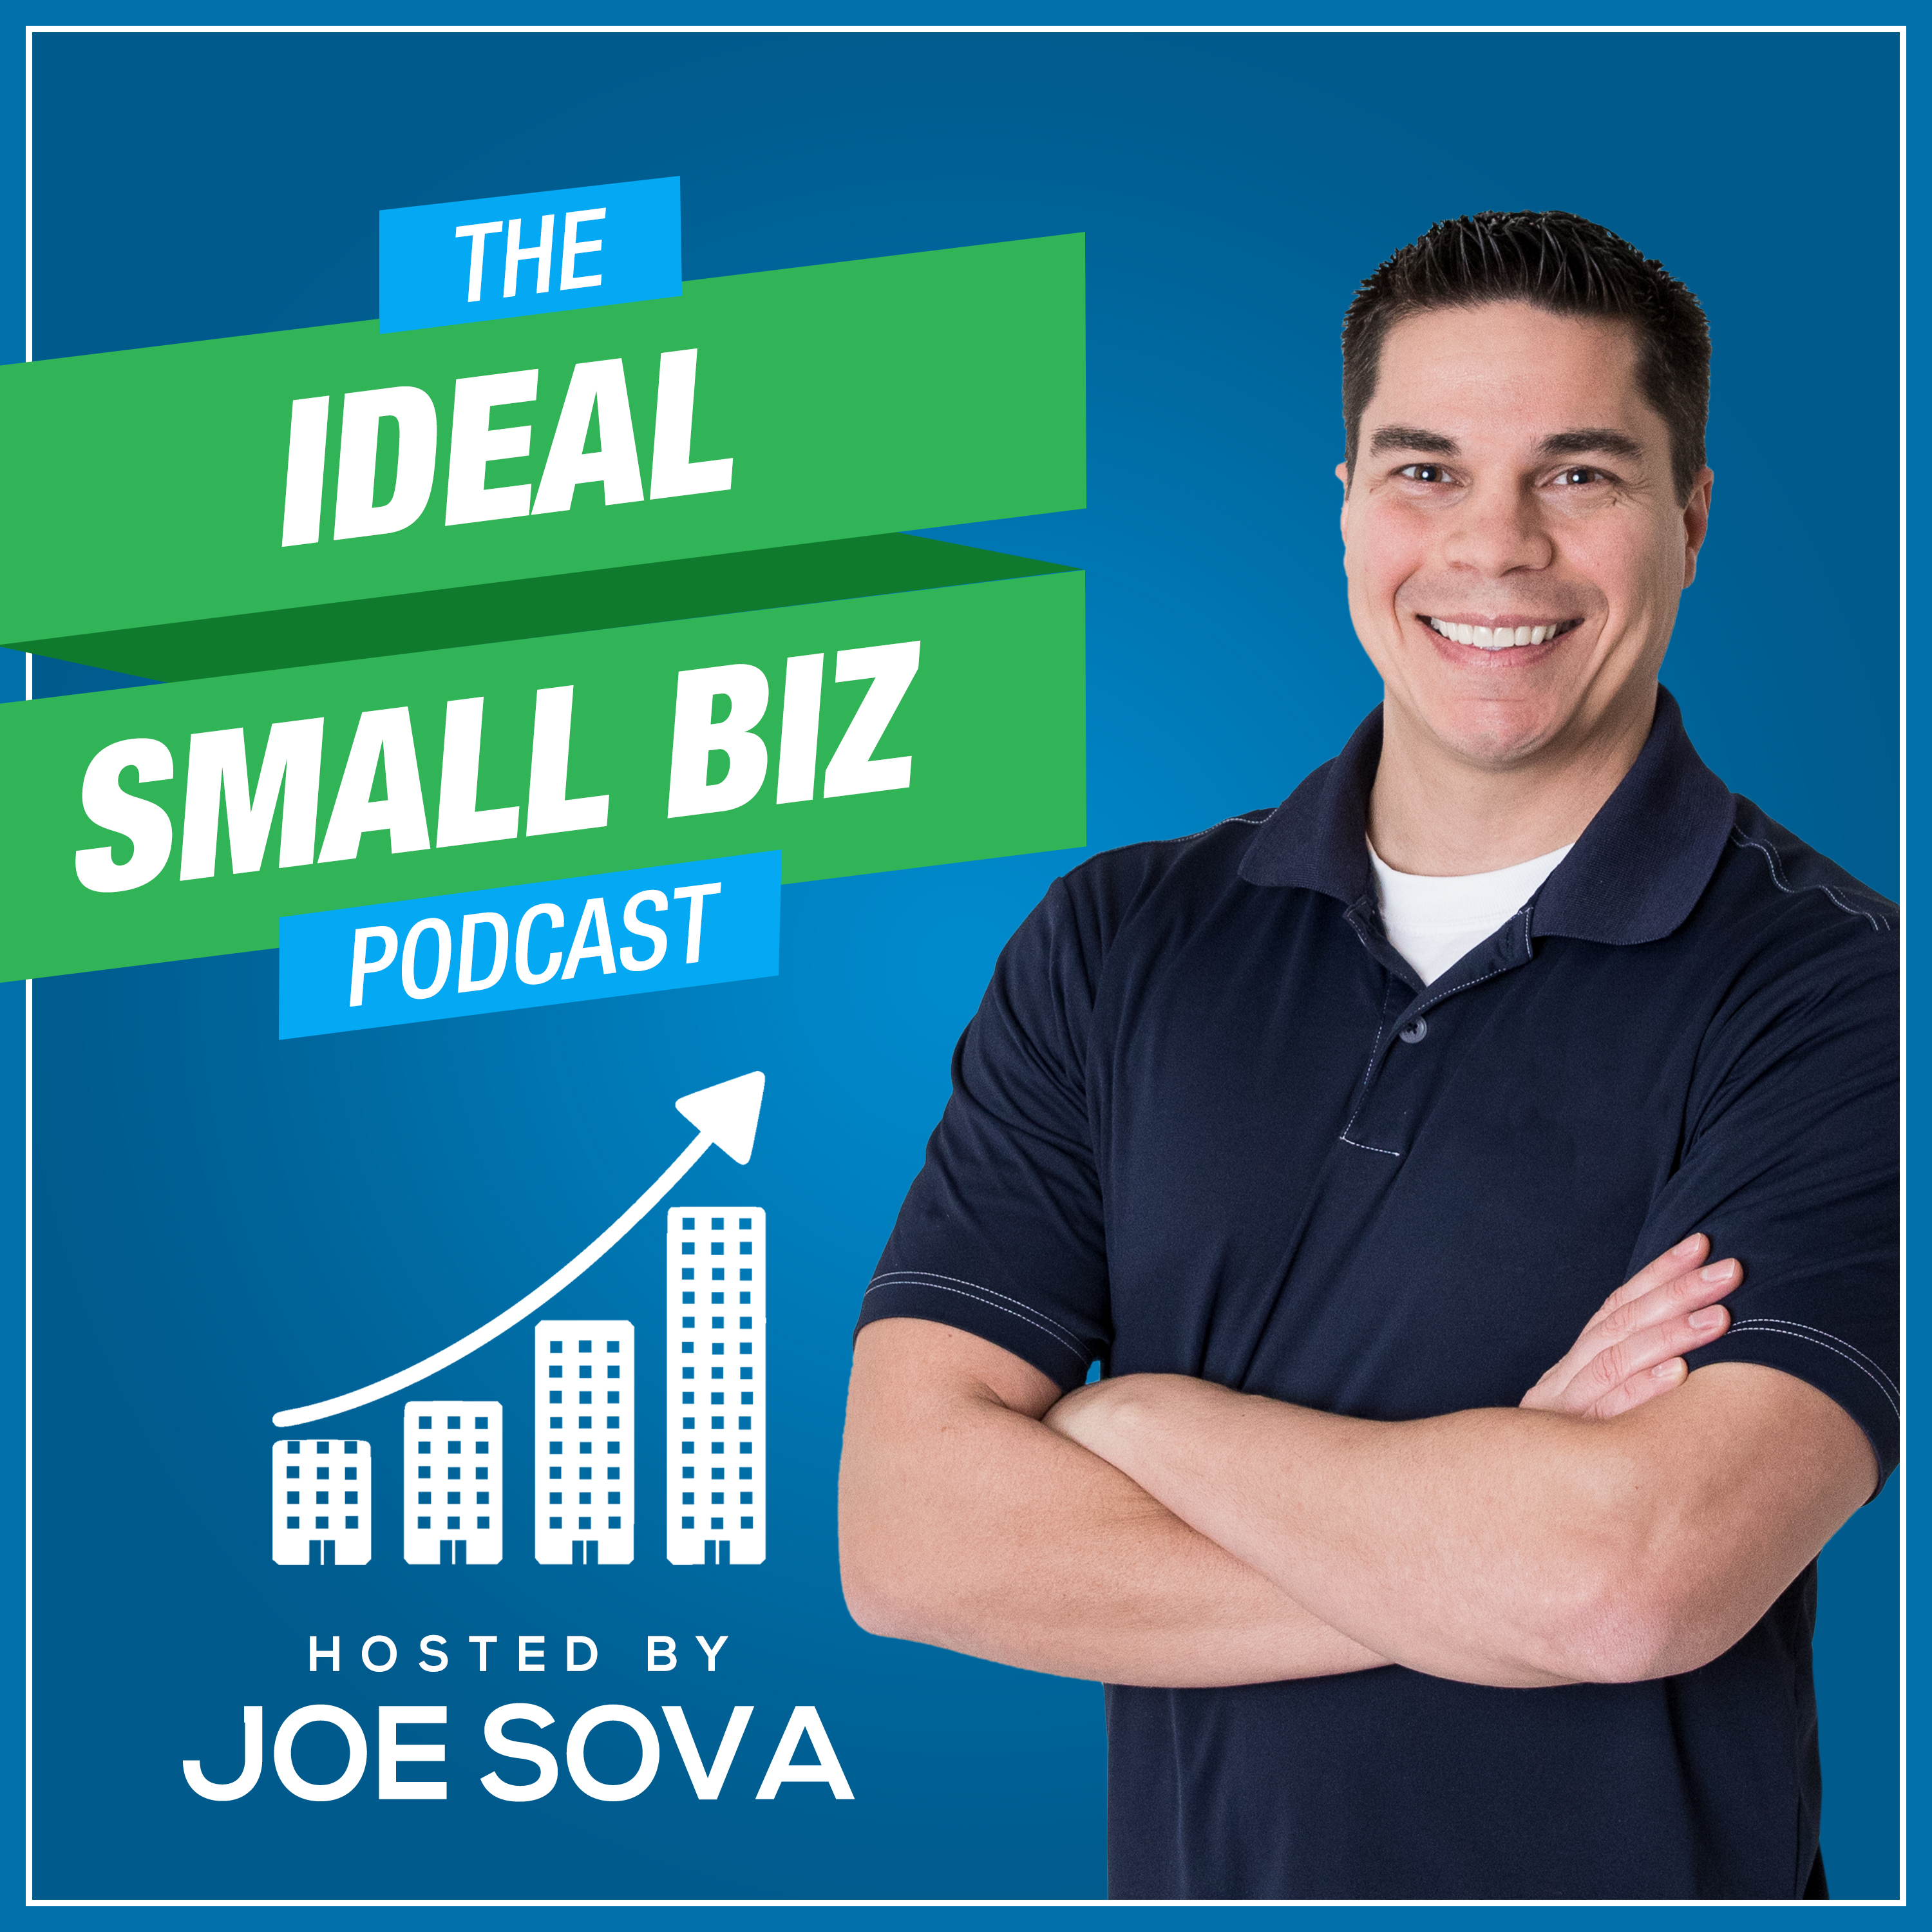 The Ideal Small Biz Podcast show art